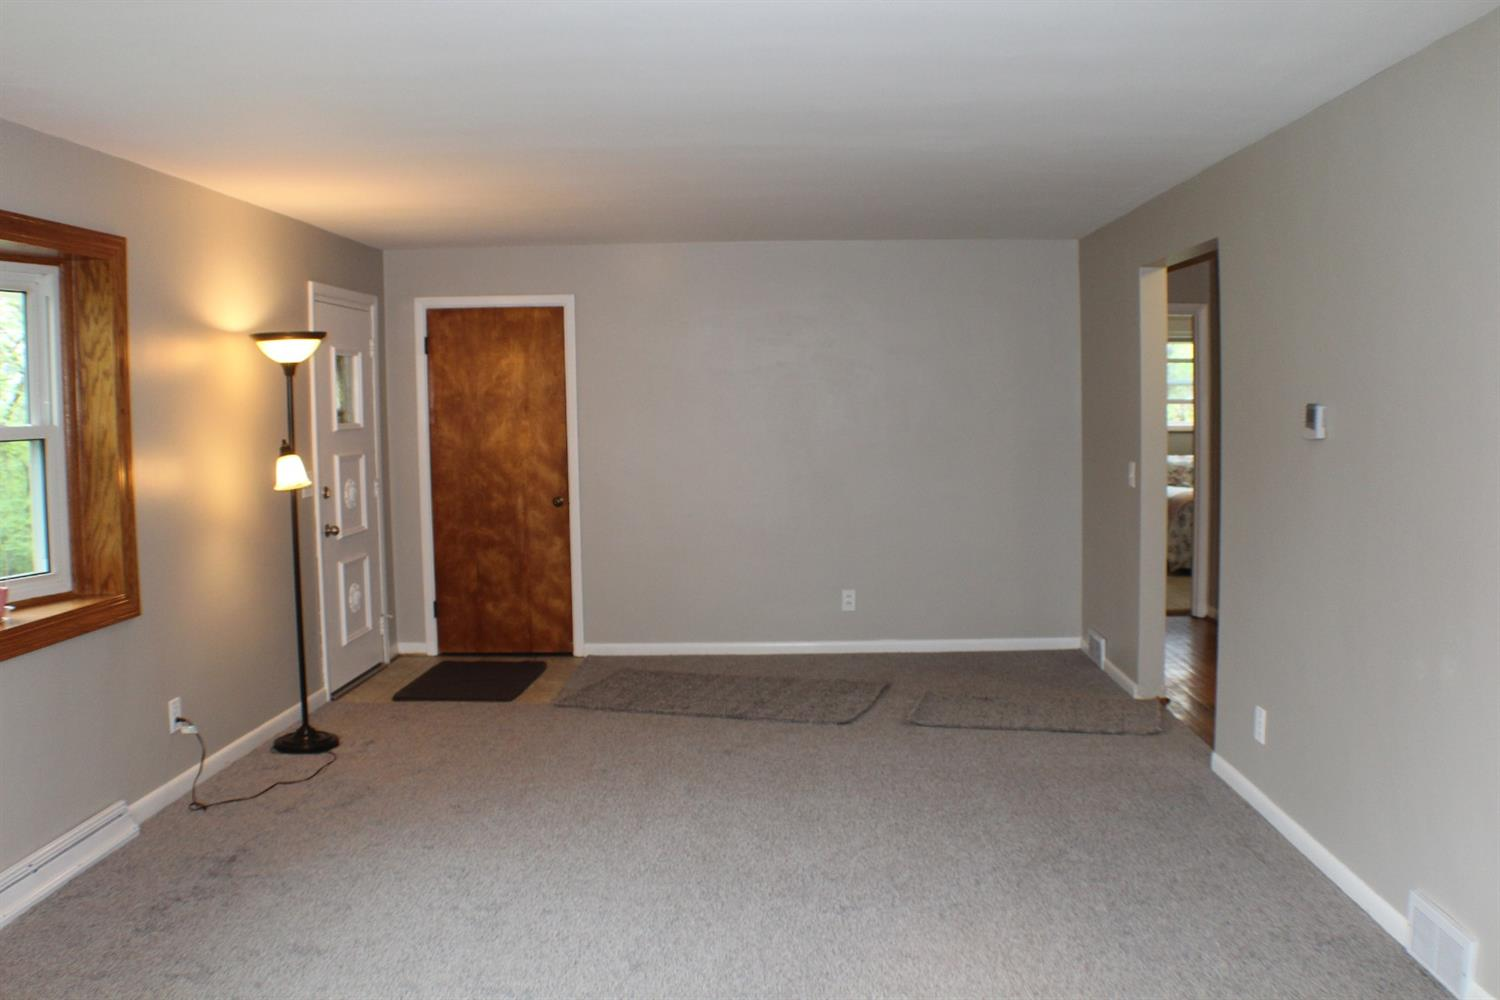 Photo 3 for 463 Beechtree Dr Finneytown, OH 45224